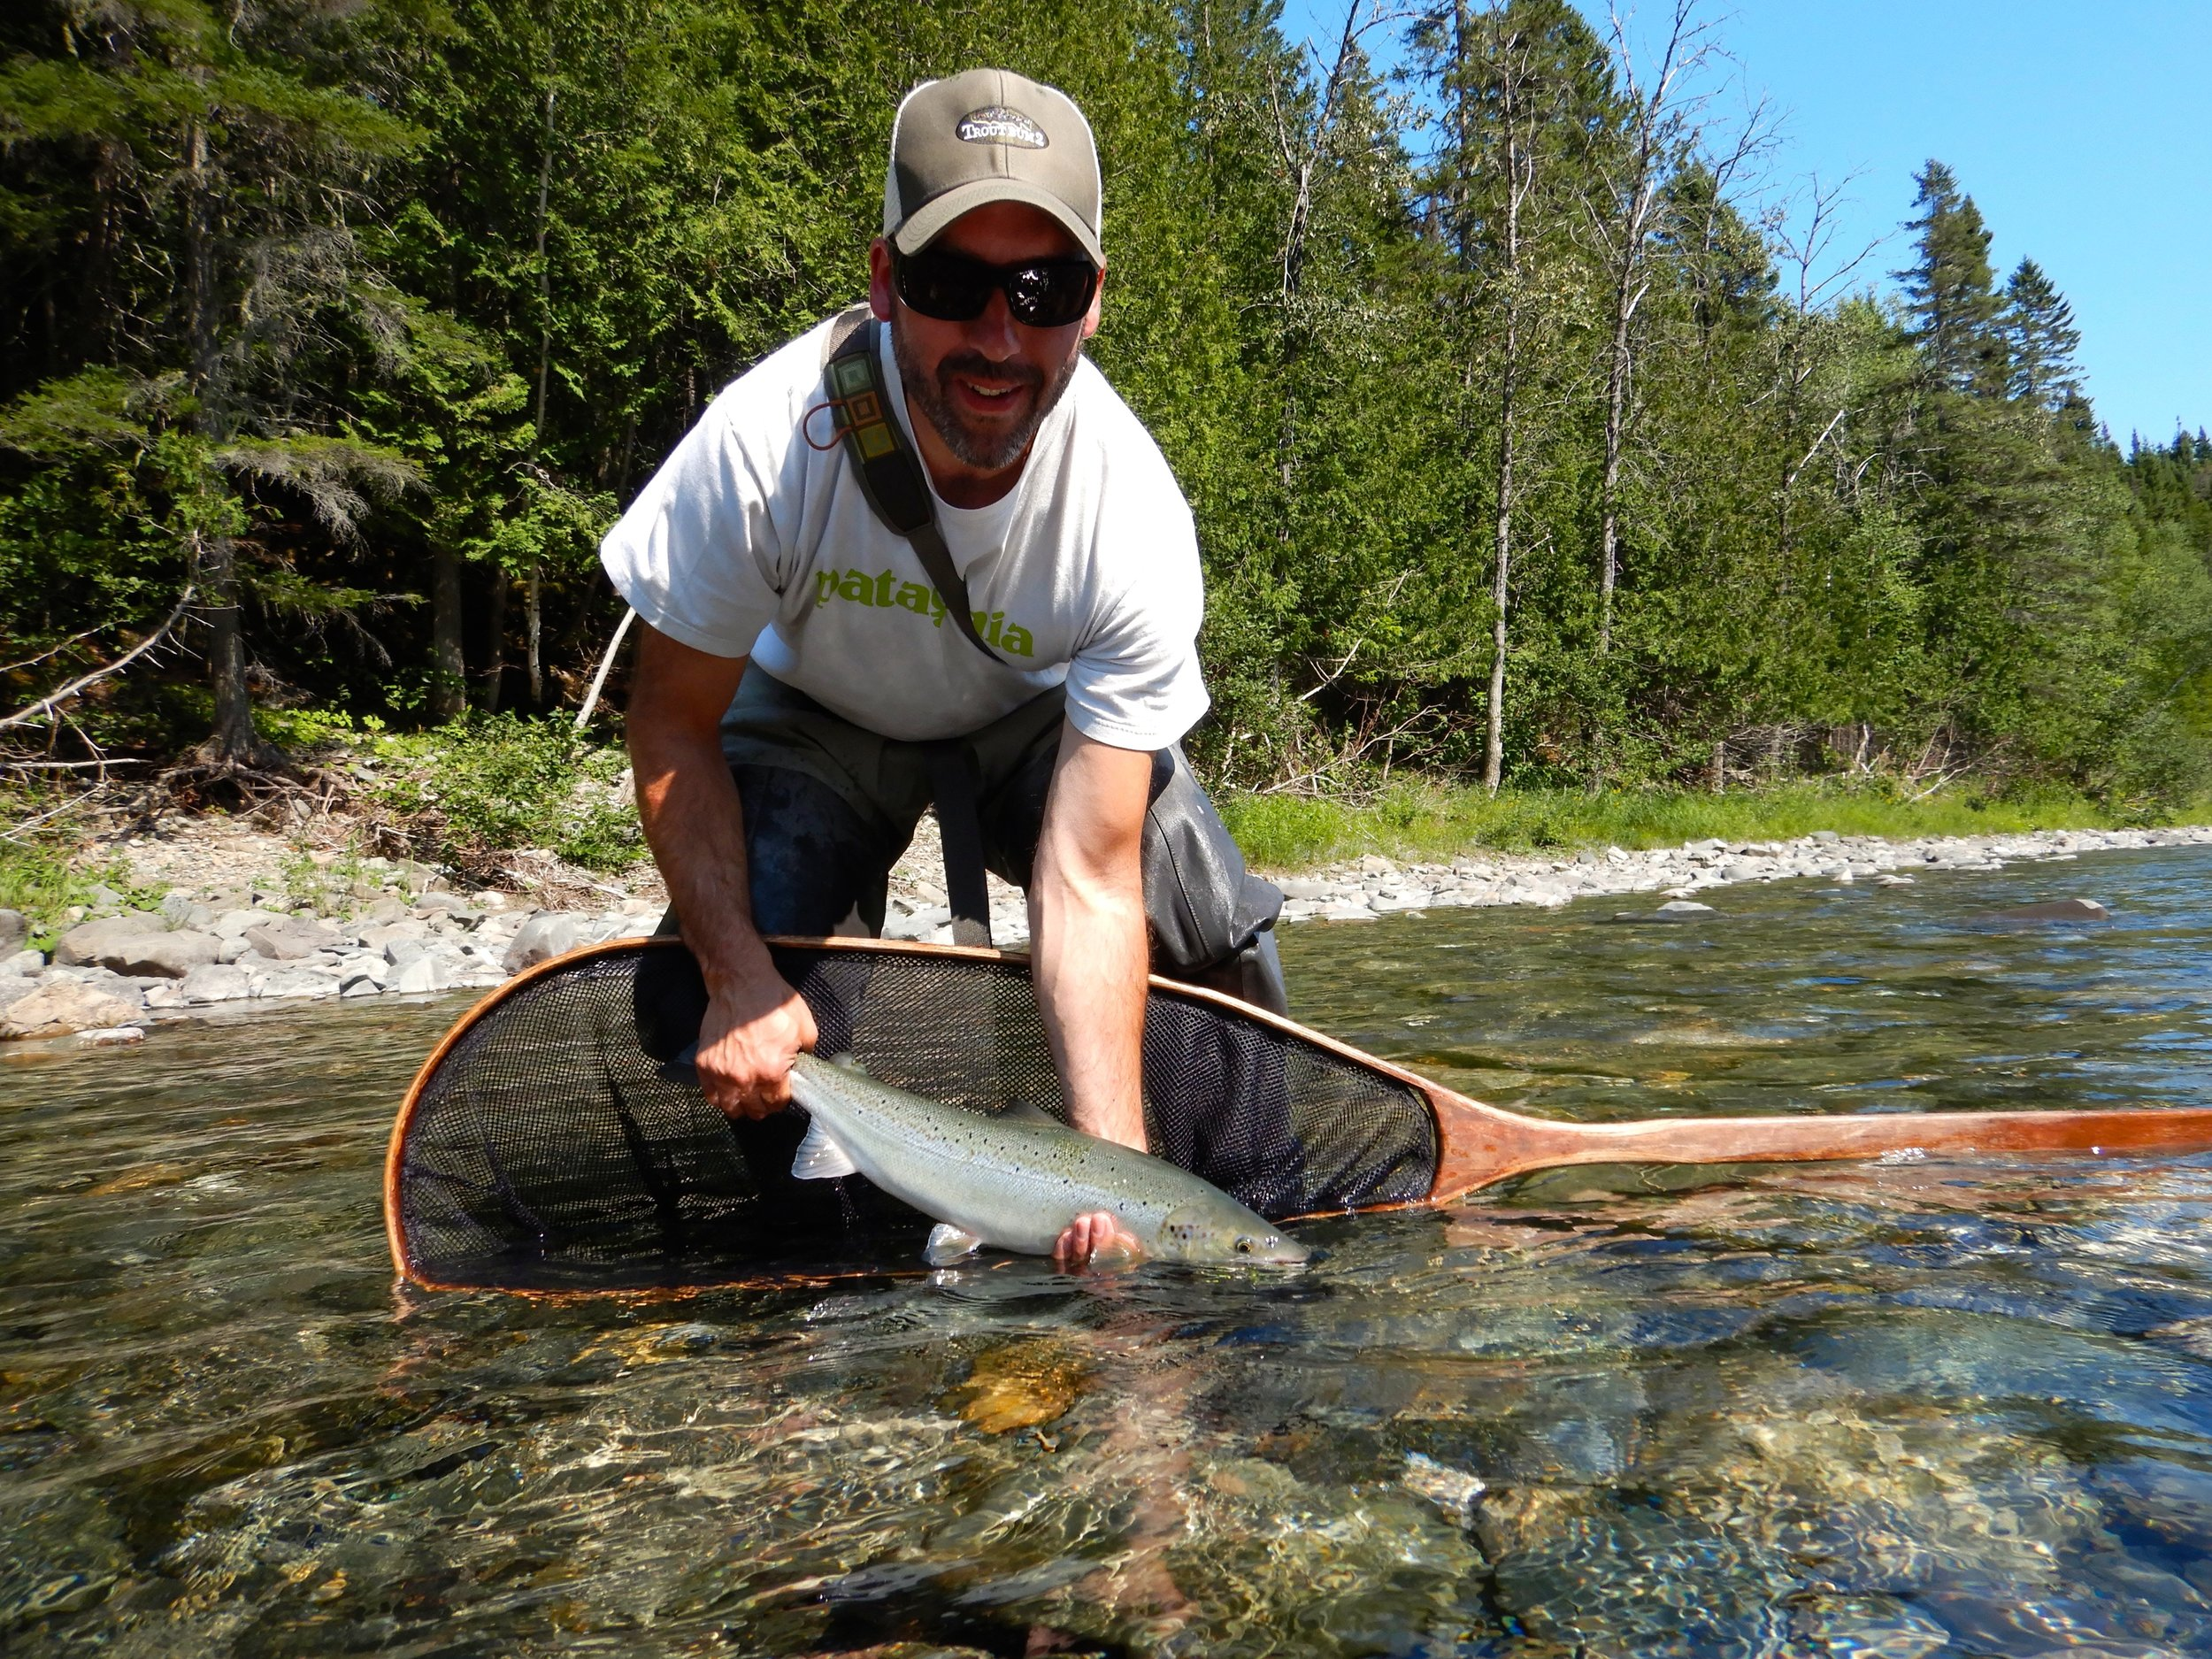 Clint Malkmus with his first Atlantic salmon, congratulations Clint!